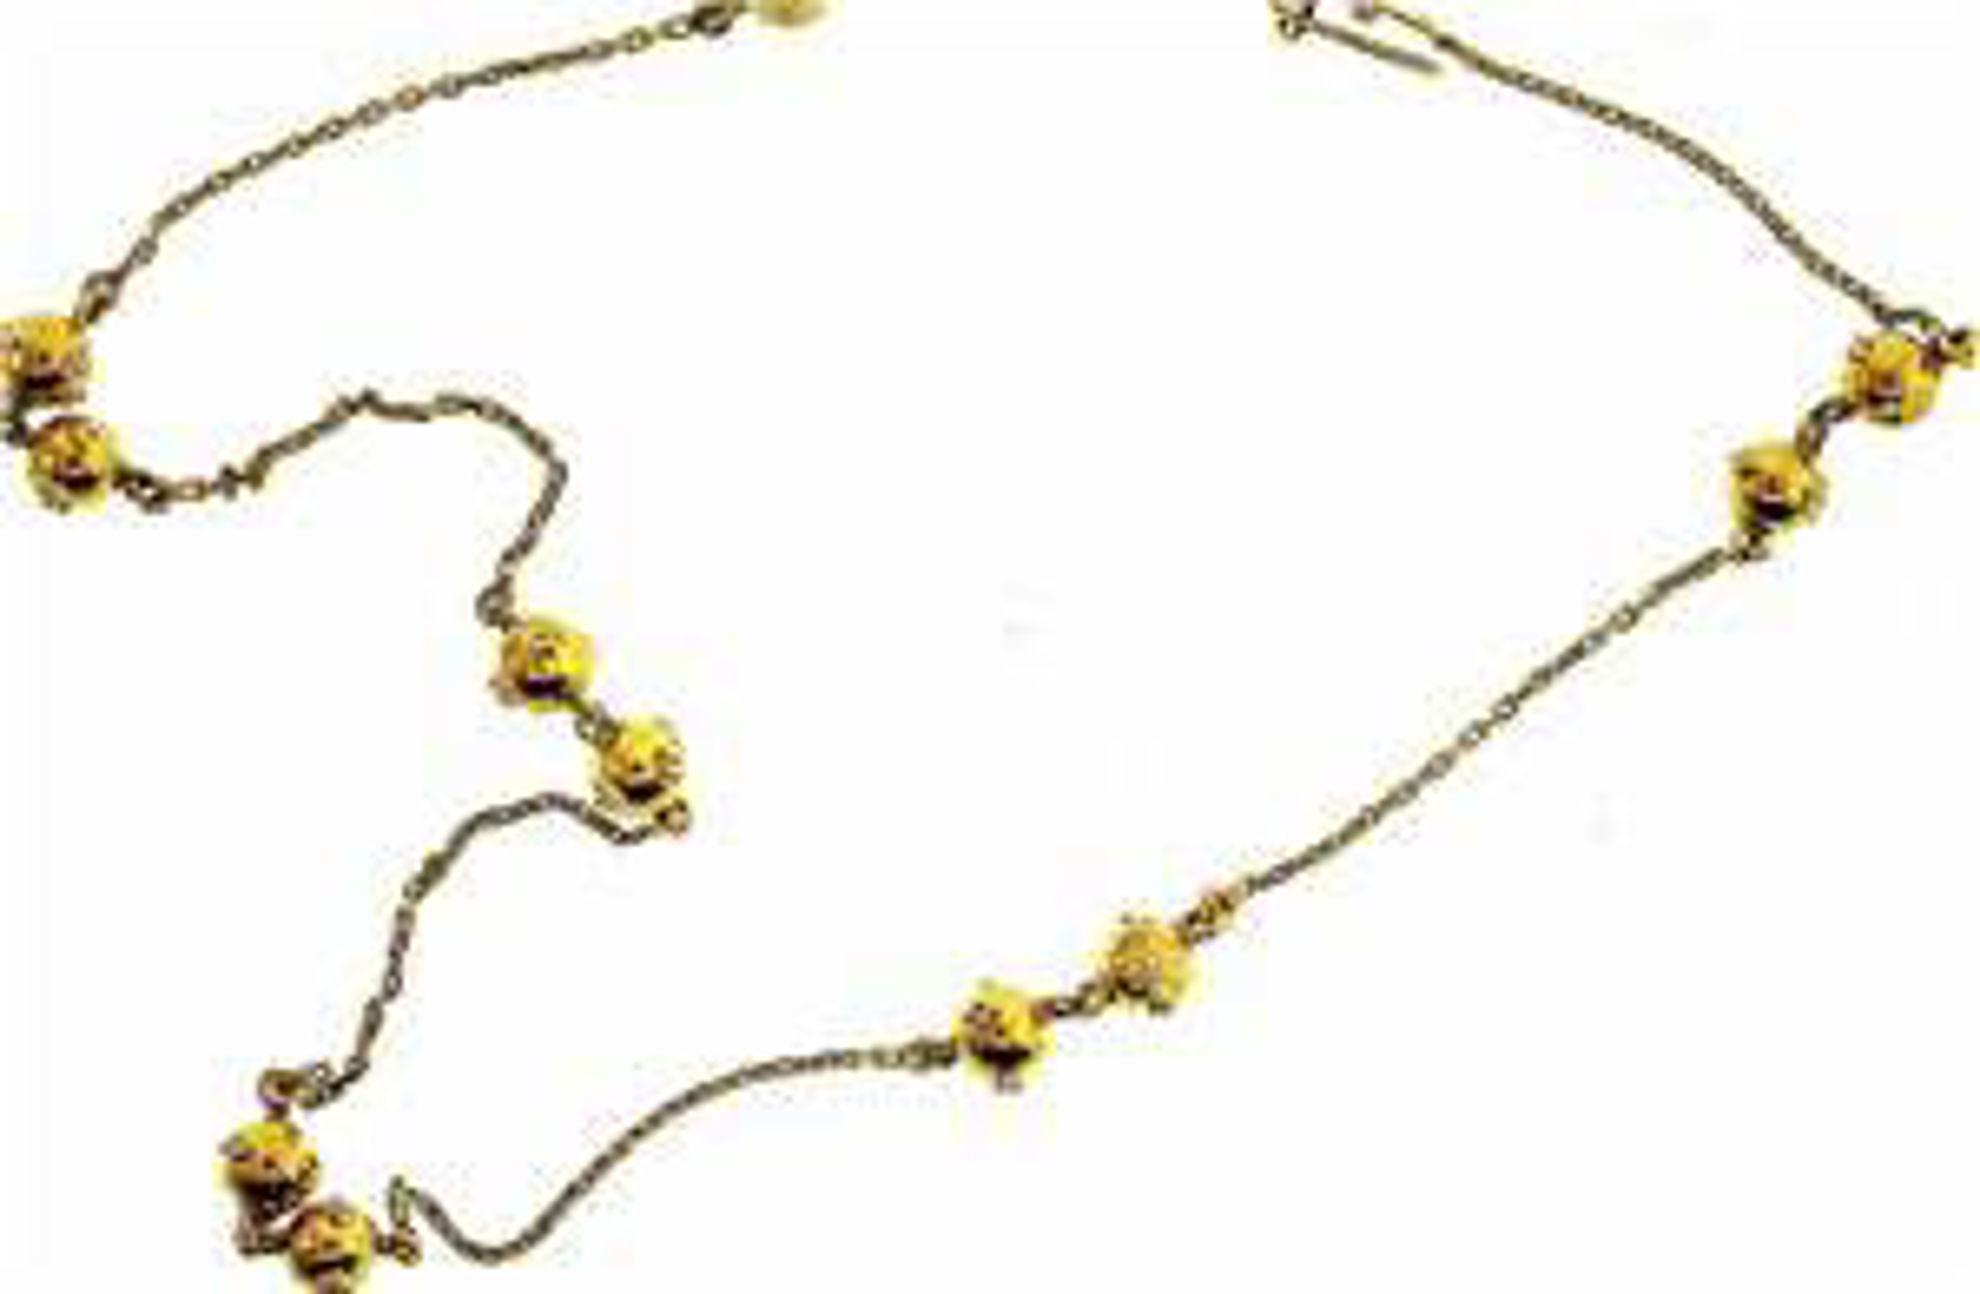 Picture of Chains 22kt-8.3 DWT, 12.9 Grams